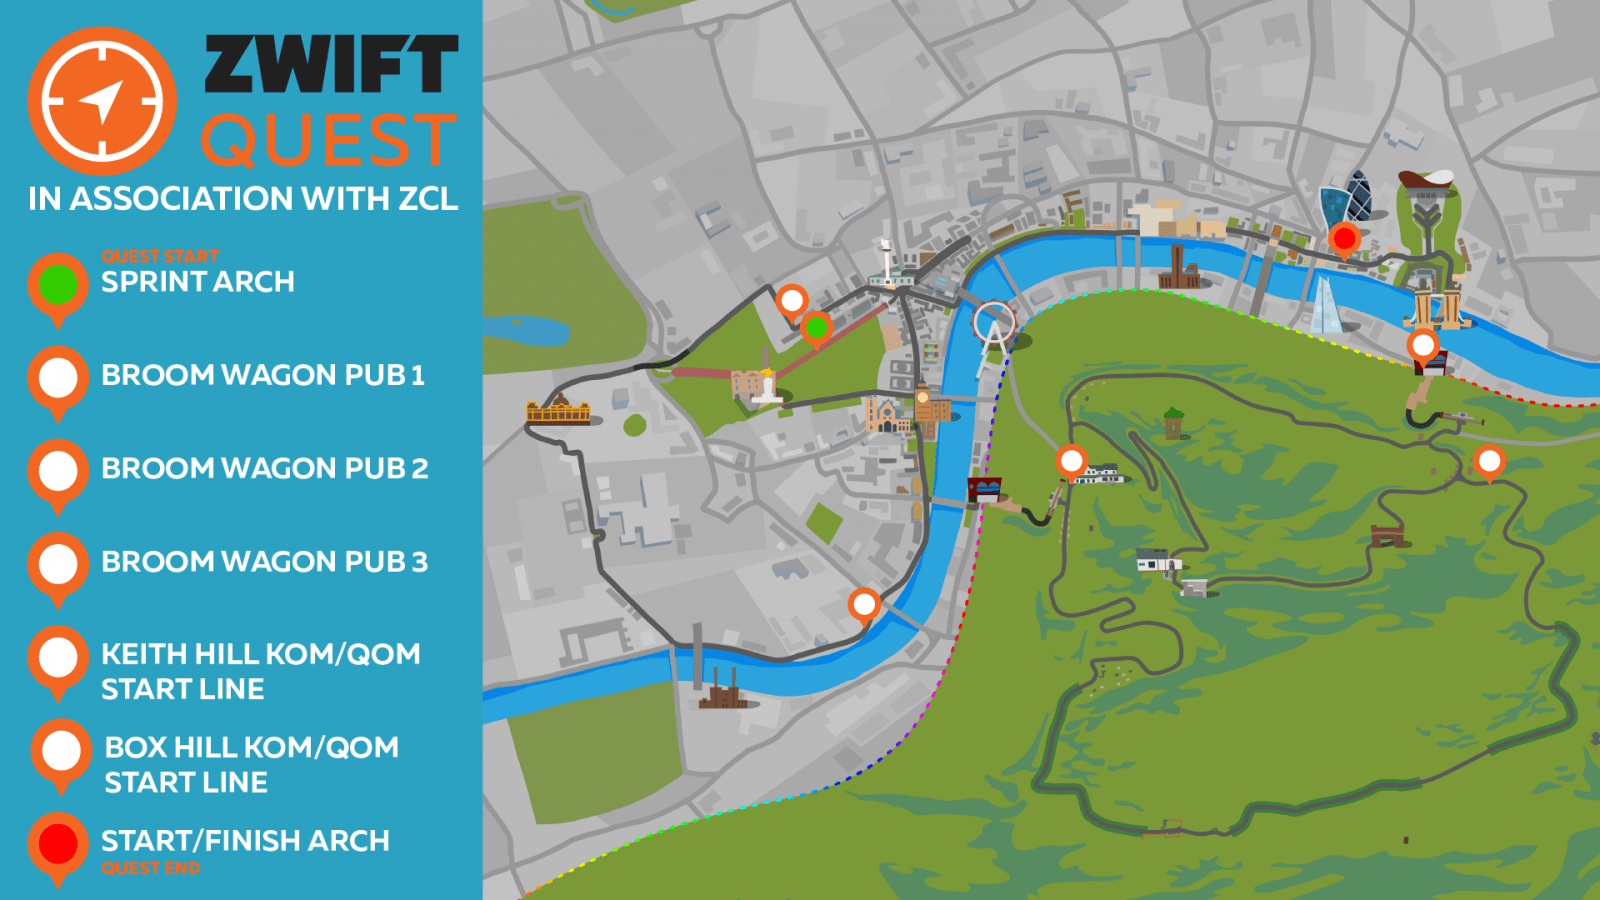 An Evening with ZwiftQuest: Who has the best route? | Zwift Insider